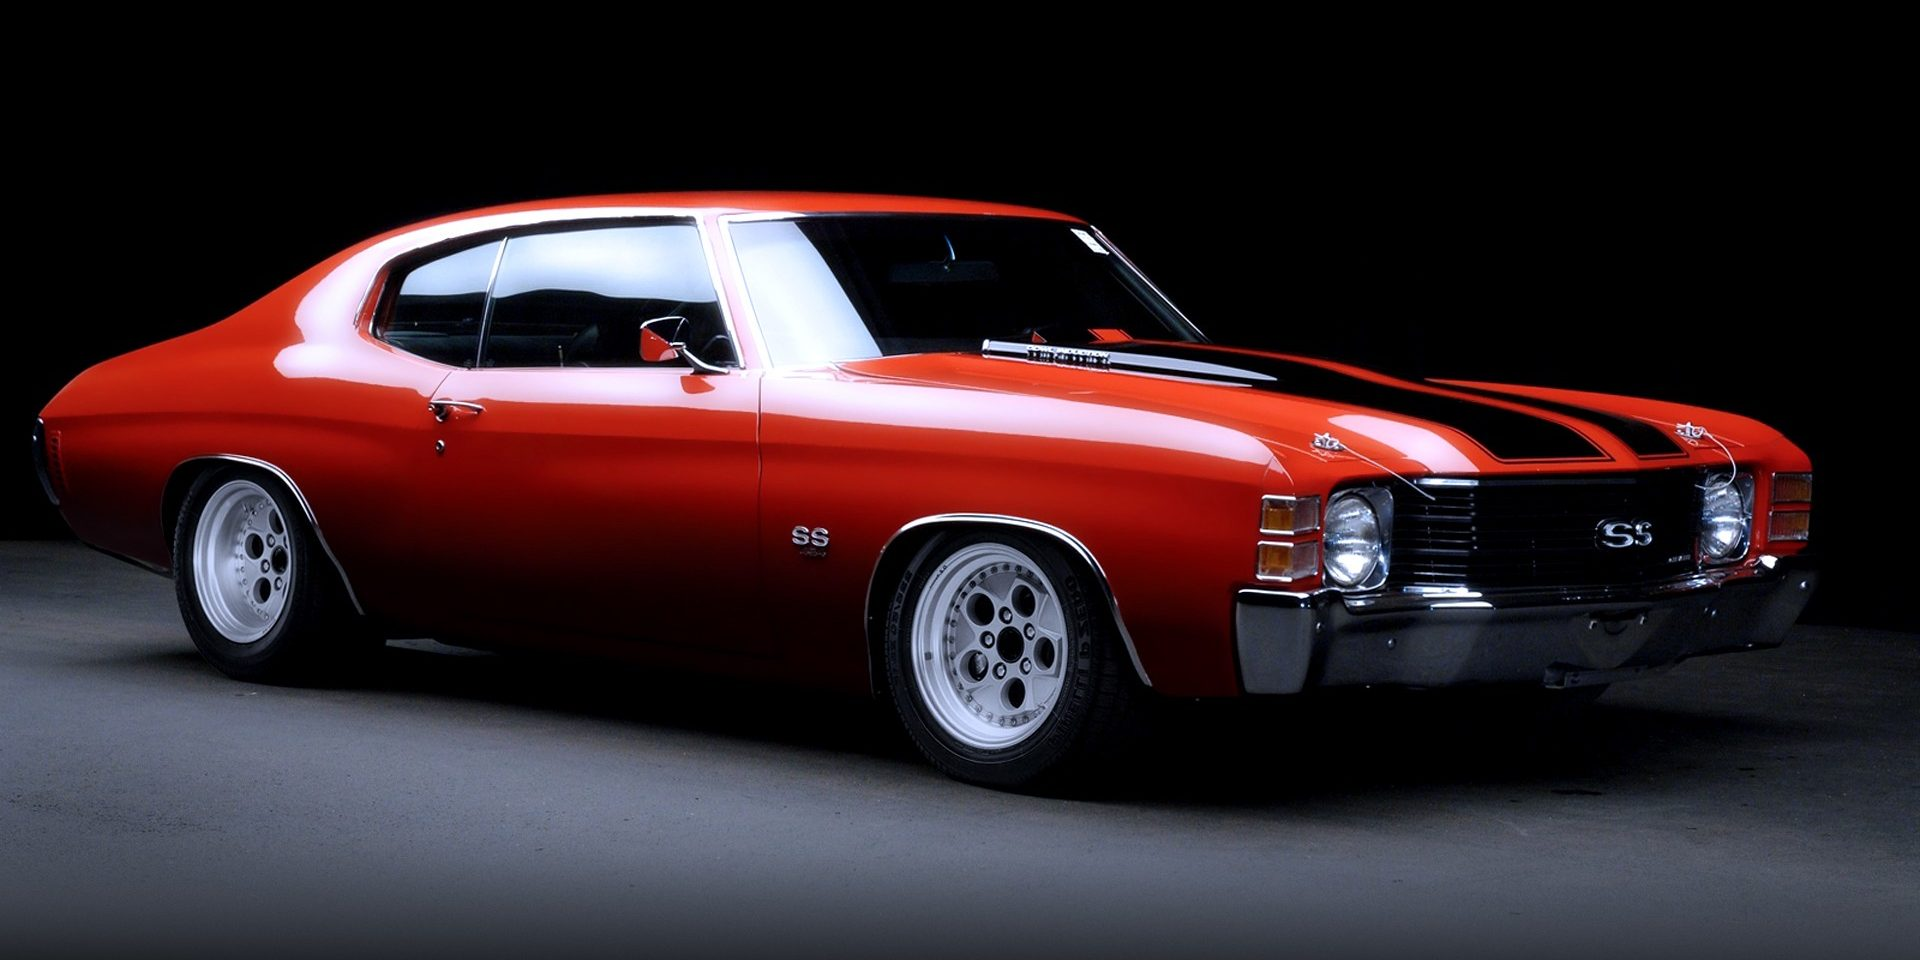 Popular Muscle Cars All Car Enthusiasts Want To Own